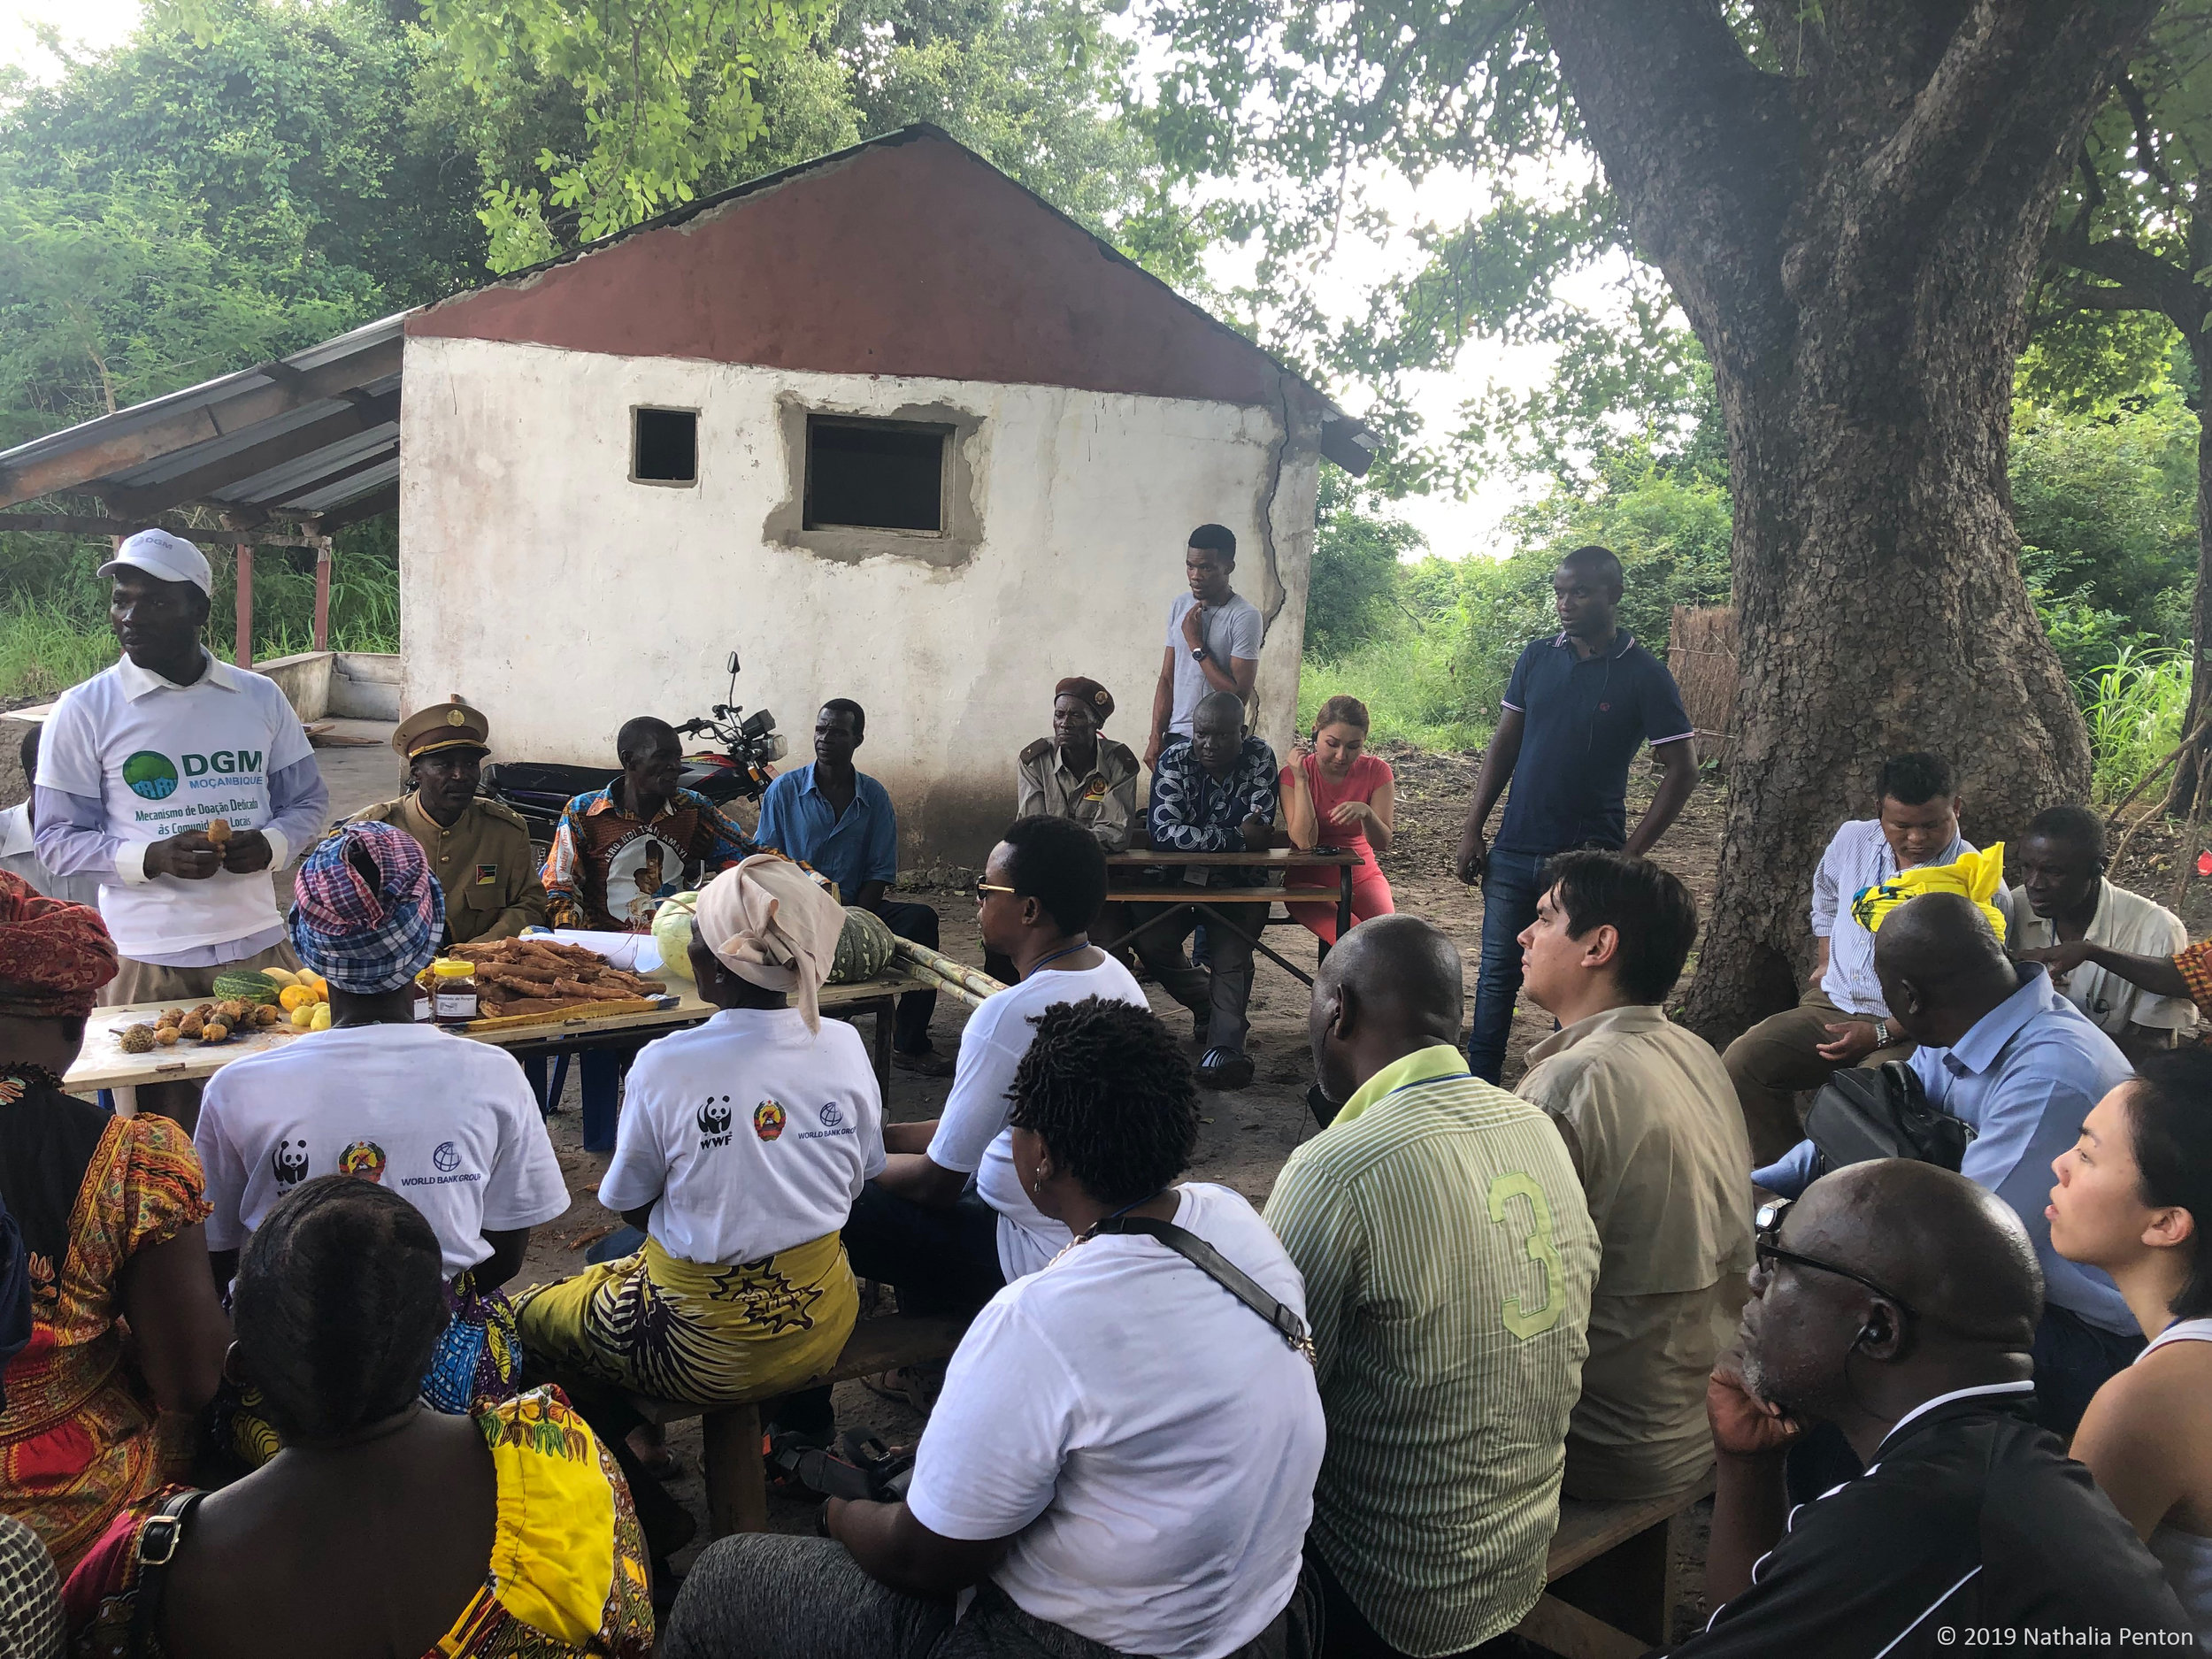 Exchange participants gather at the local community in Catapu, Mozambique to learn about the trainings, private partnerships, and ranger procedures the local people have set in place to protect and grow their land and livelihood.